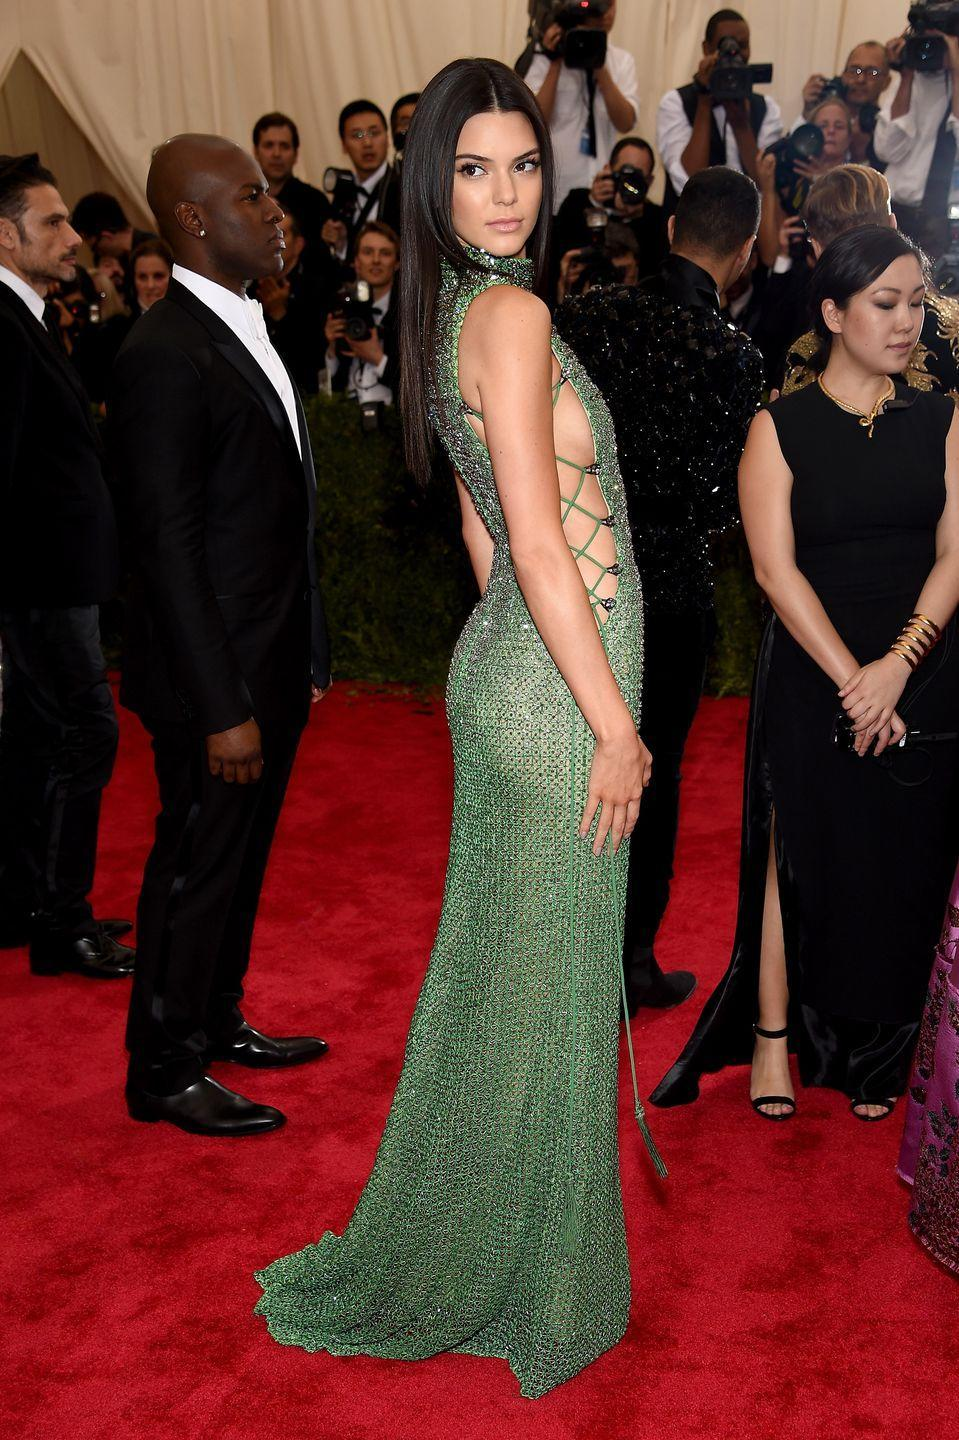 <p>From the emerald-colored crystals to the cascading train, the Calvin Klein gown Kendall Jenner wore to the 2015 Met Gala gives us serious mermaid vibes. </p>